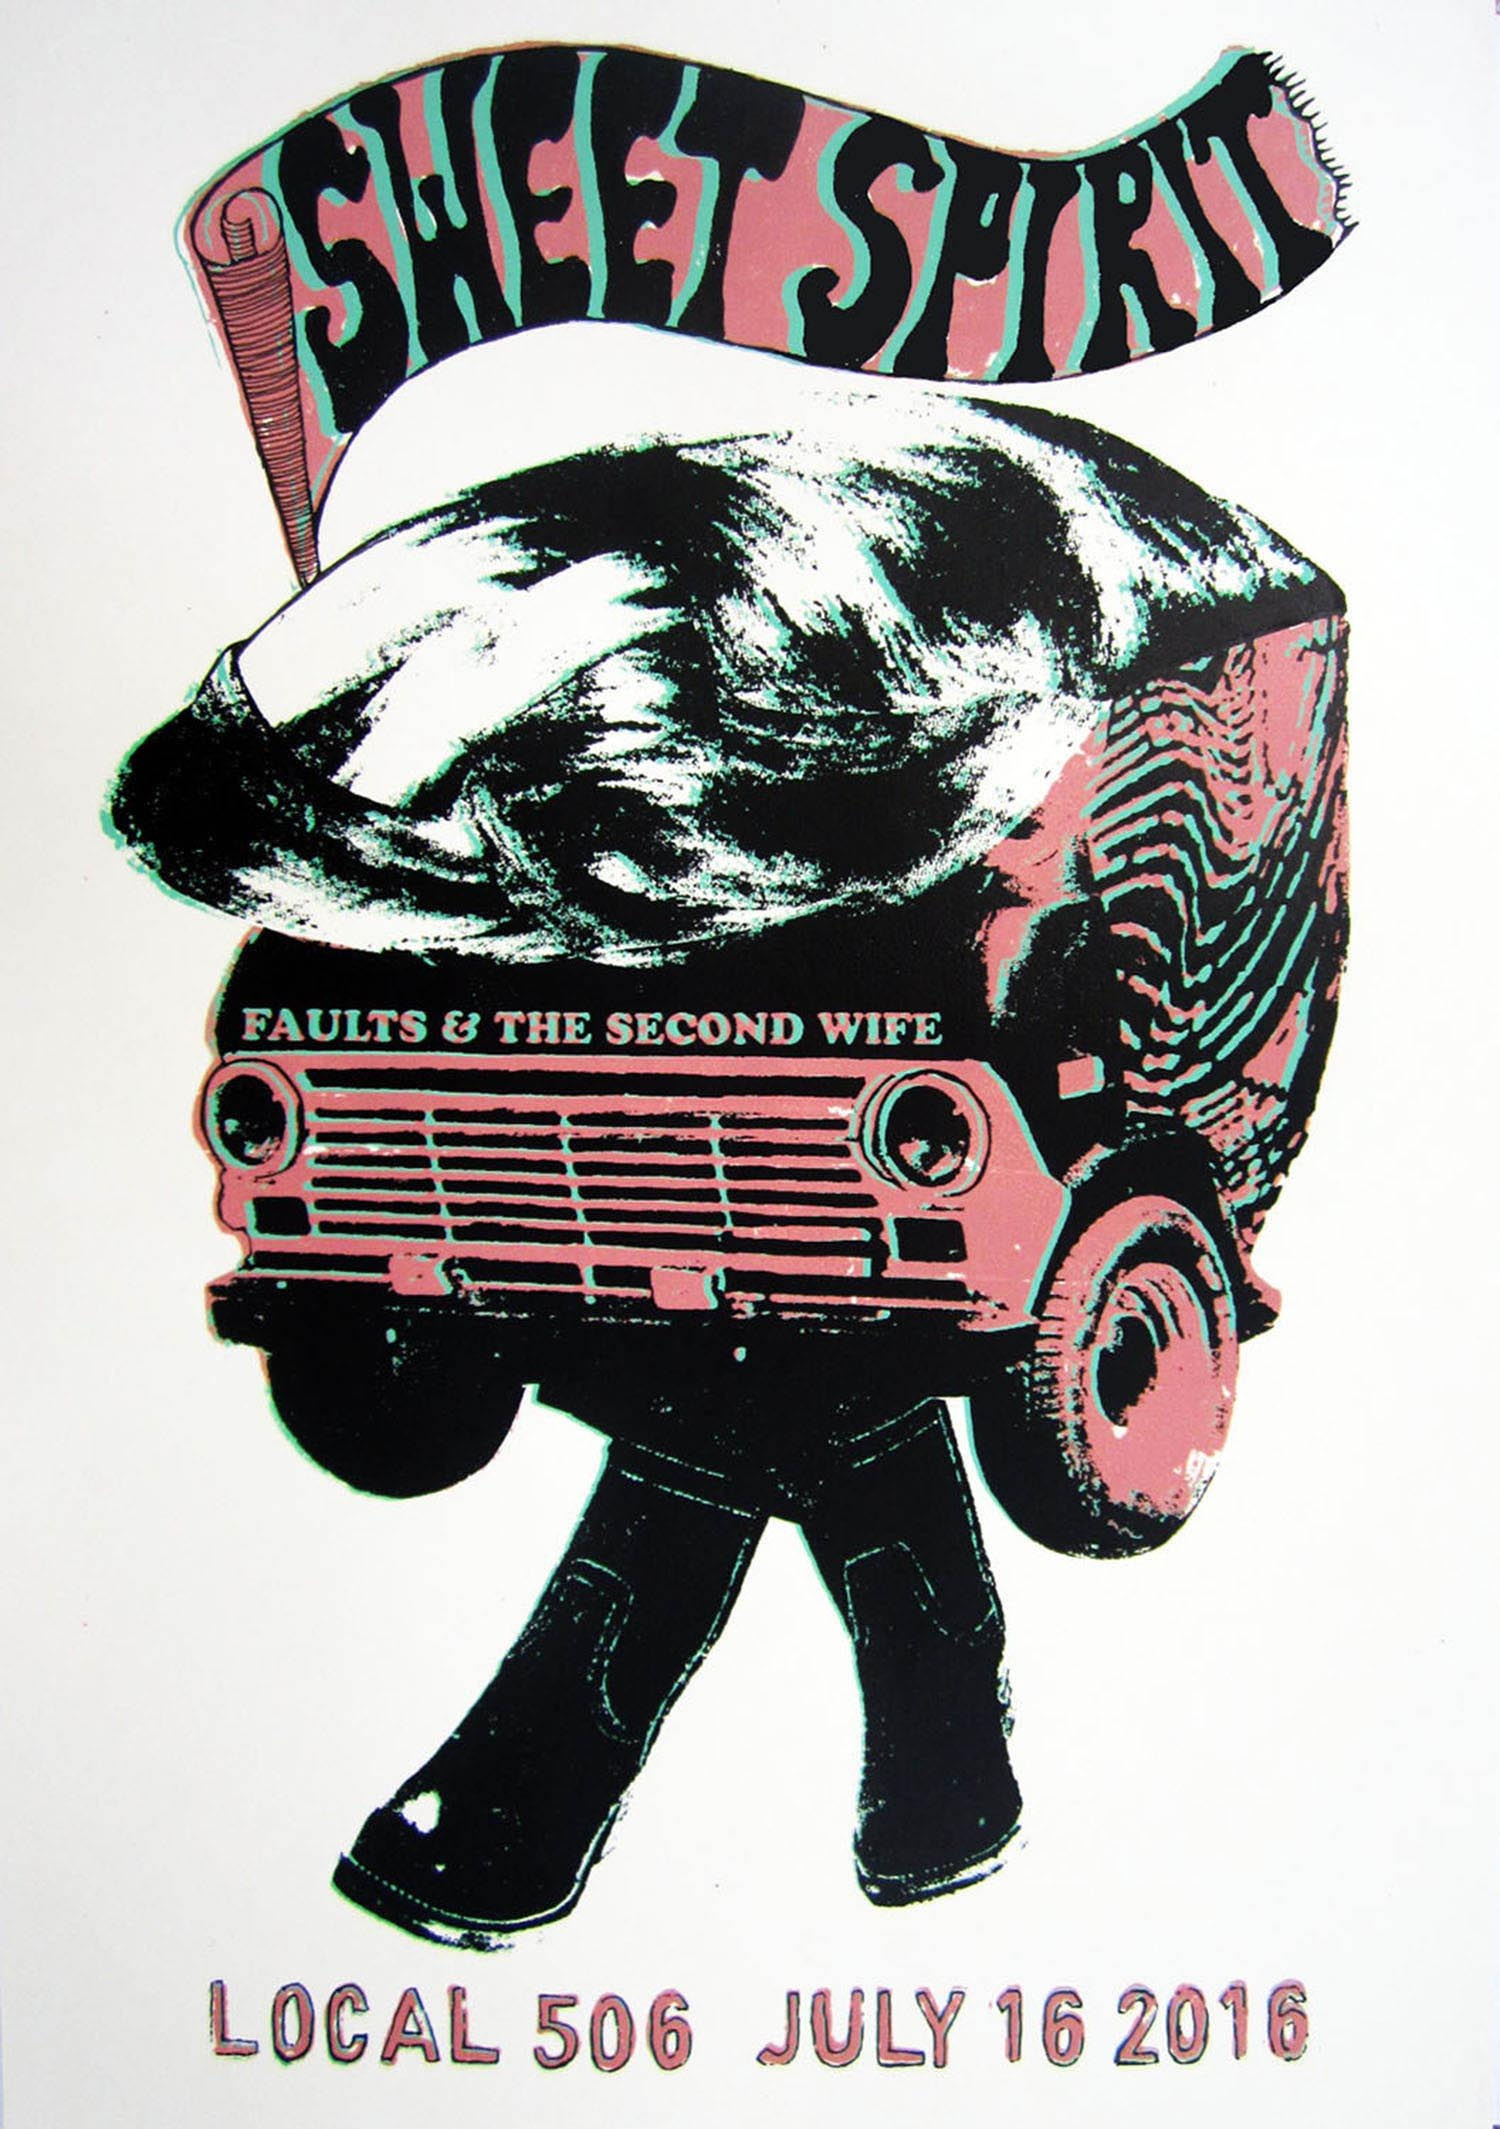 Sweet Spirit - Faults & The Second Wife